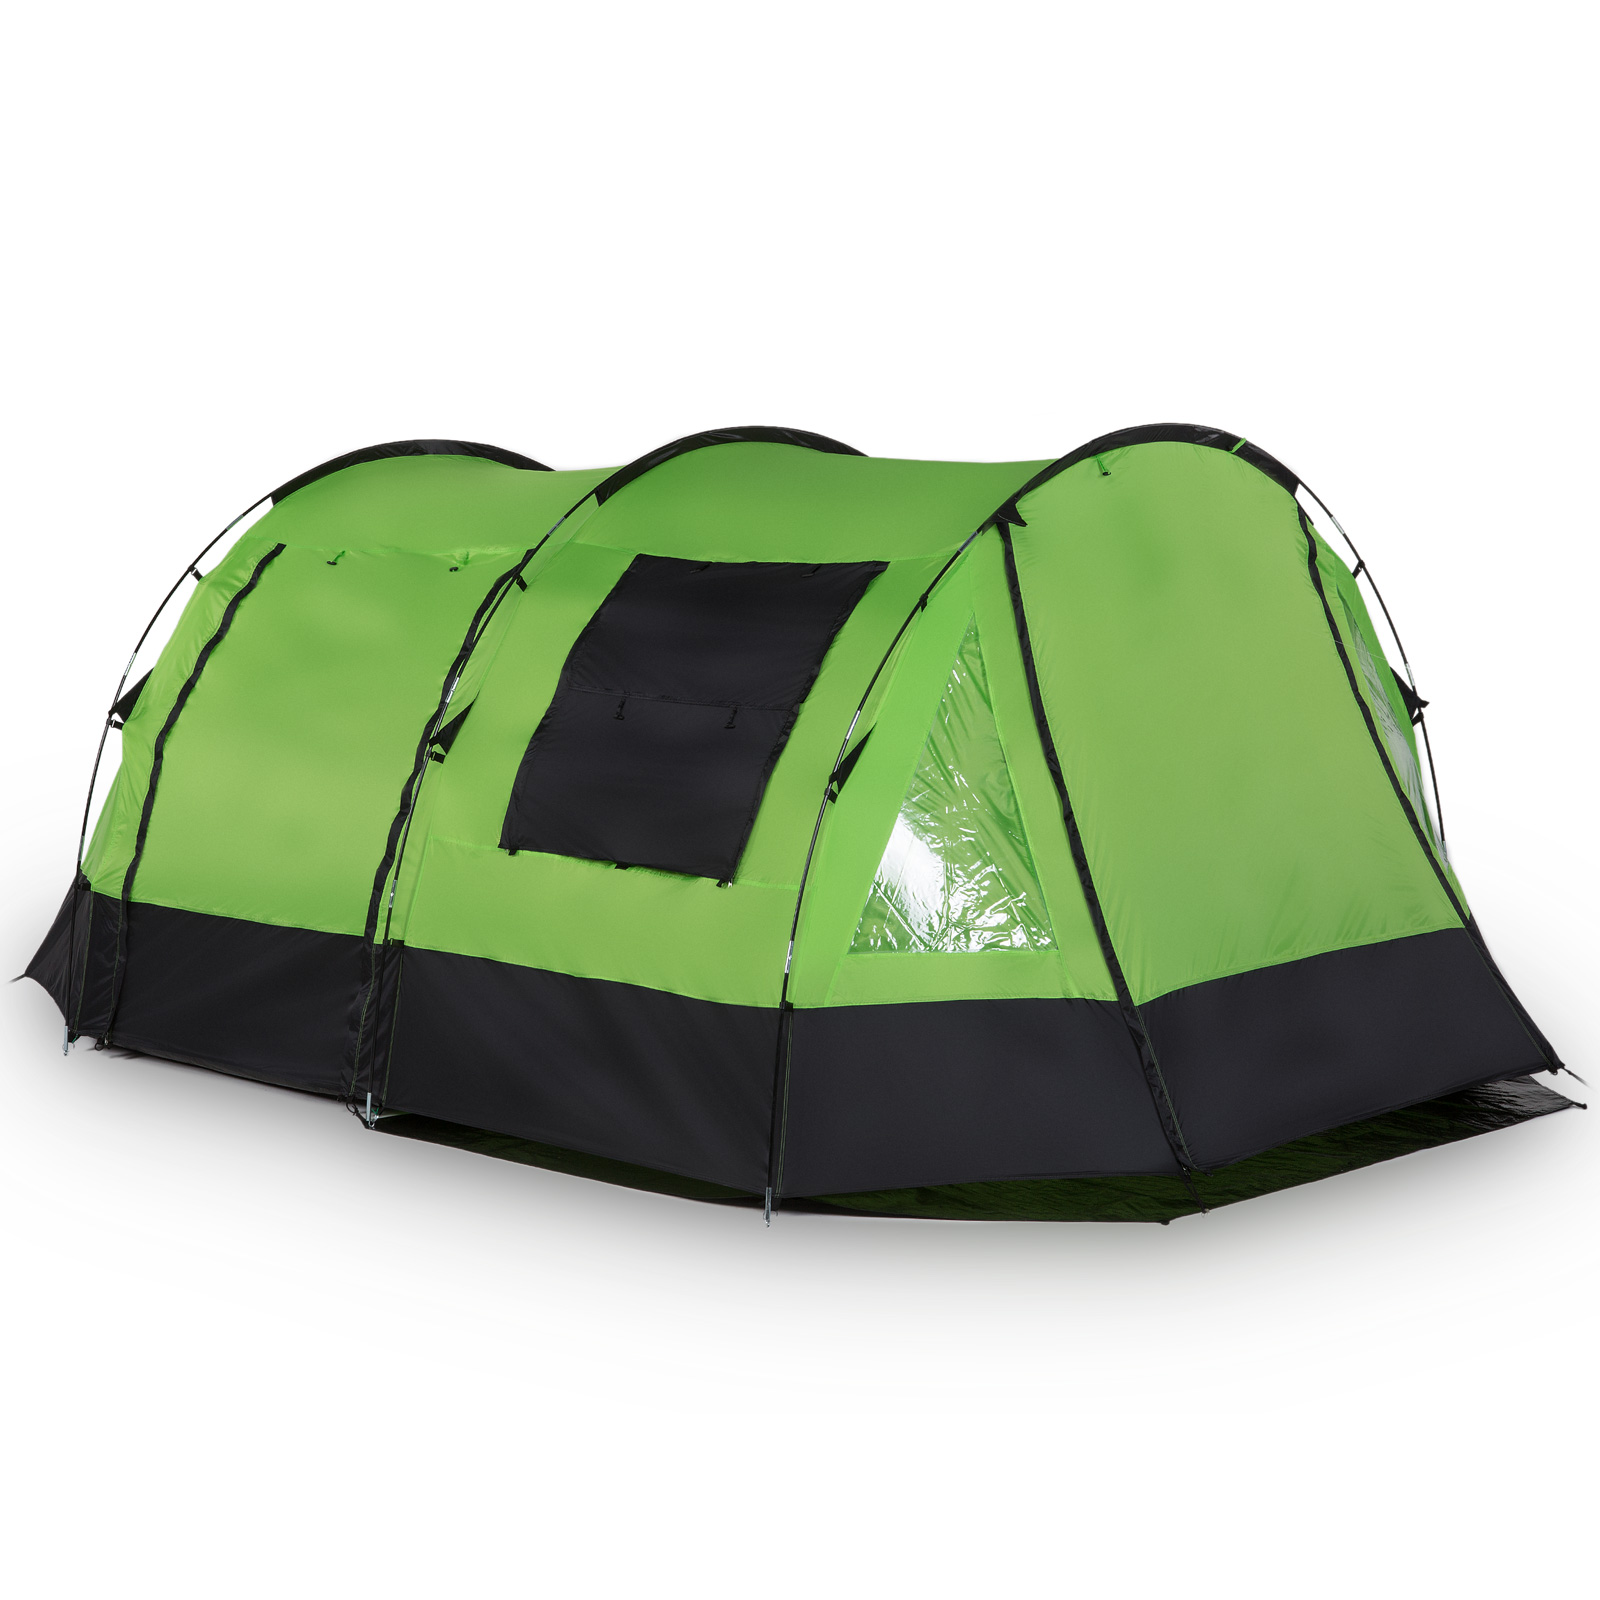 skandika kambo 4 tente camping familiale tunnel 4 pers marquise vert neuve ebay. Black Bedroom Furniture Sets. Home Design Ideas